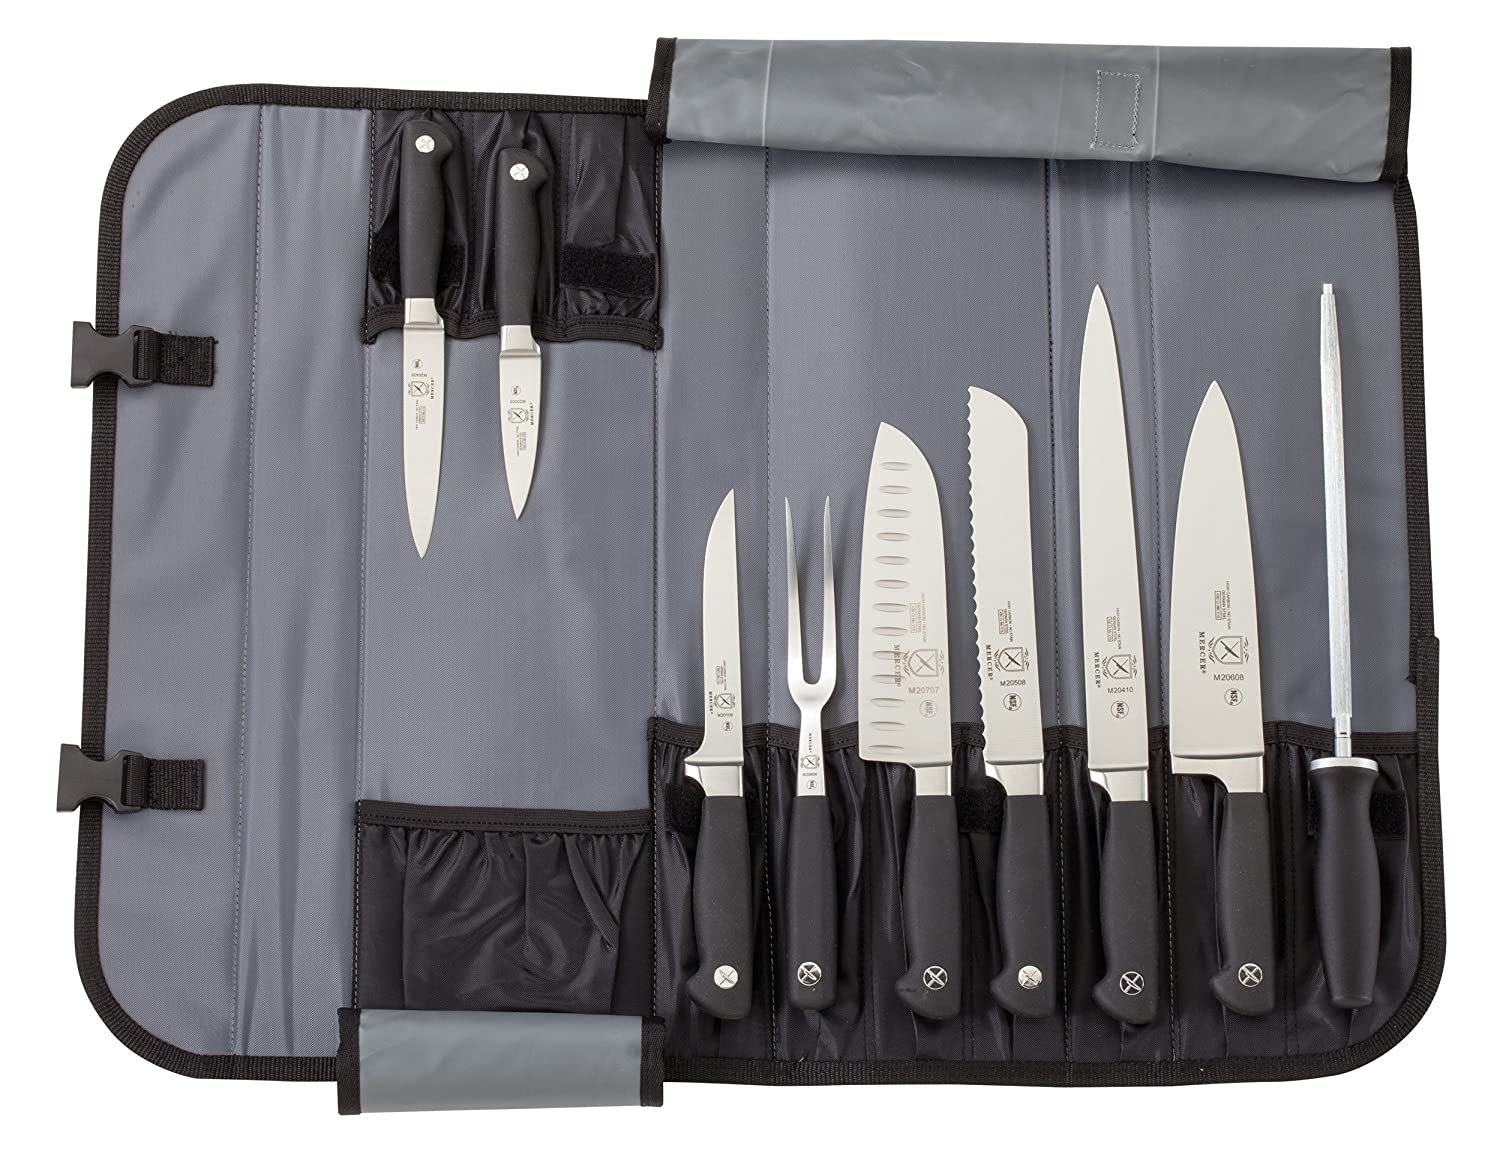 Mercer Culinary Genesis 10-Piece Forged Knife Set with Case